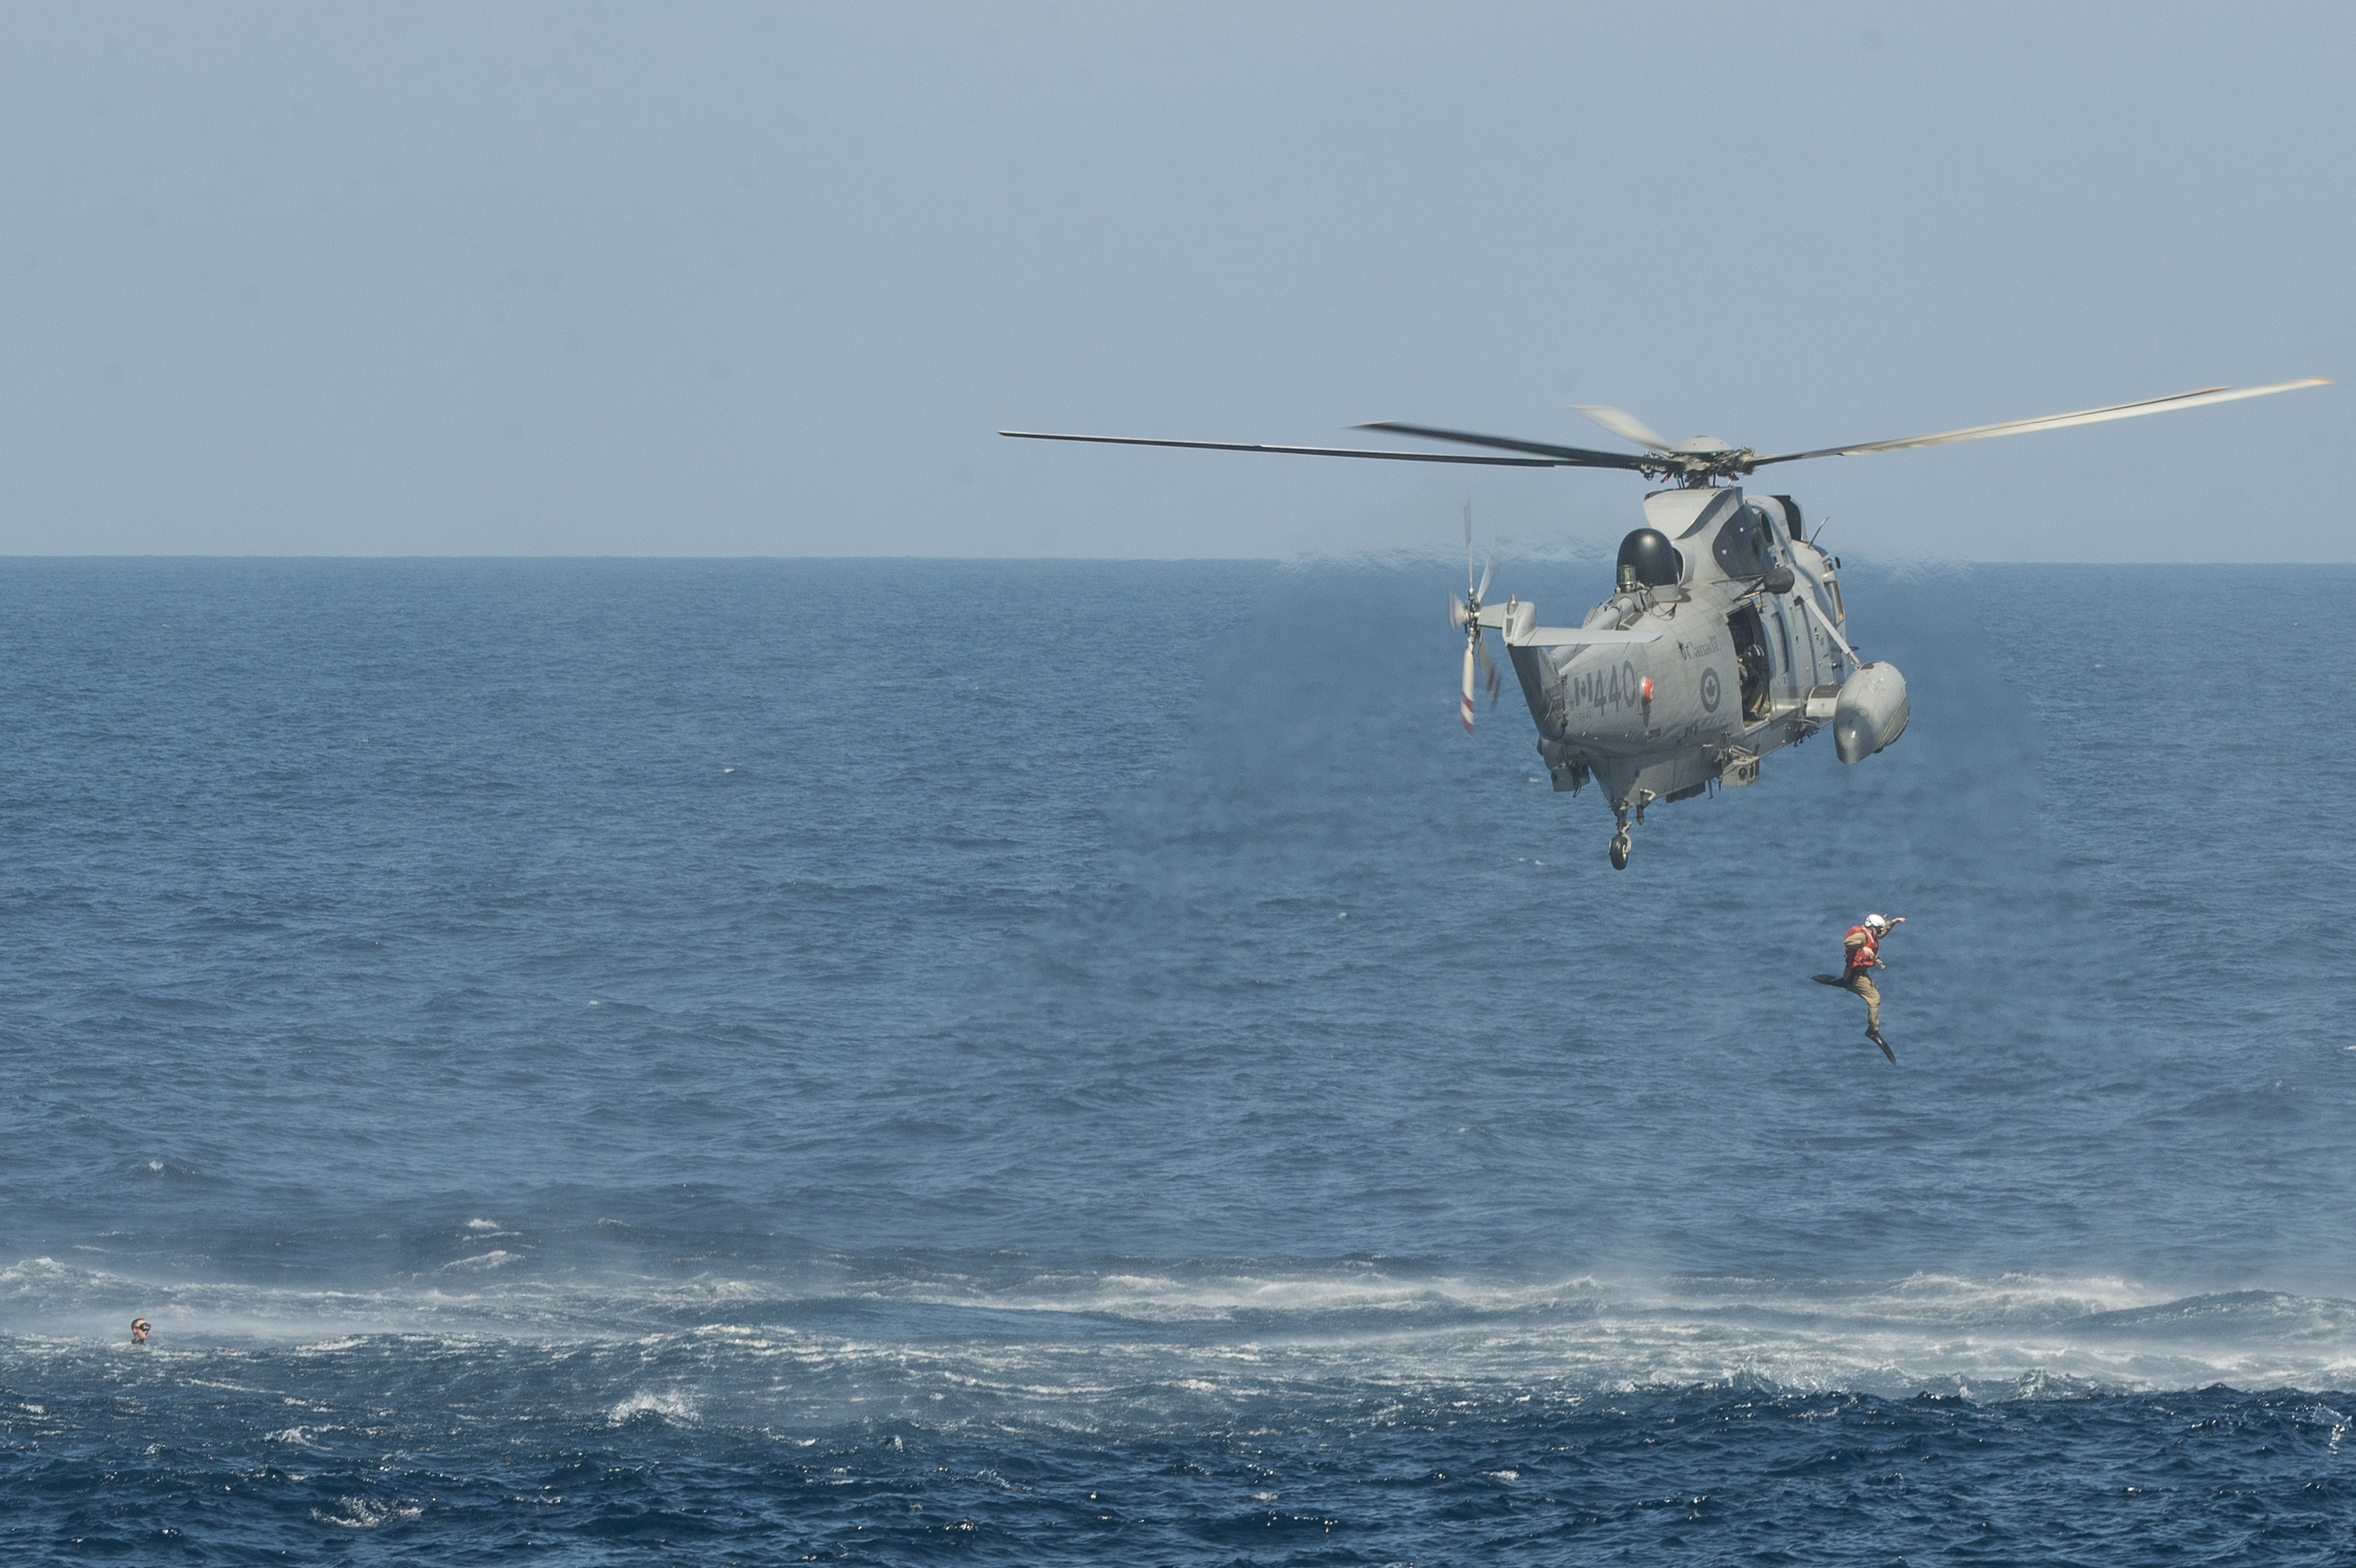 An example of MCpl Bastien's work: The dive team of Her Majesty's Canadian Ship Regina conducts diving operations from the ship's CH-124 Sea King Helicopter in the South China Sea on February 6, 2014.